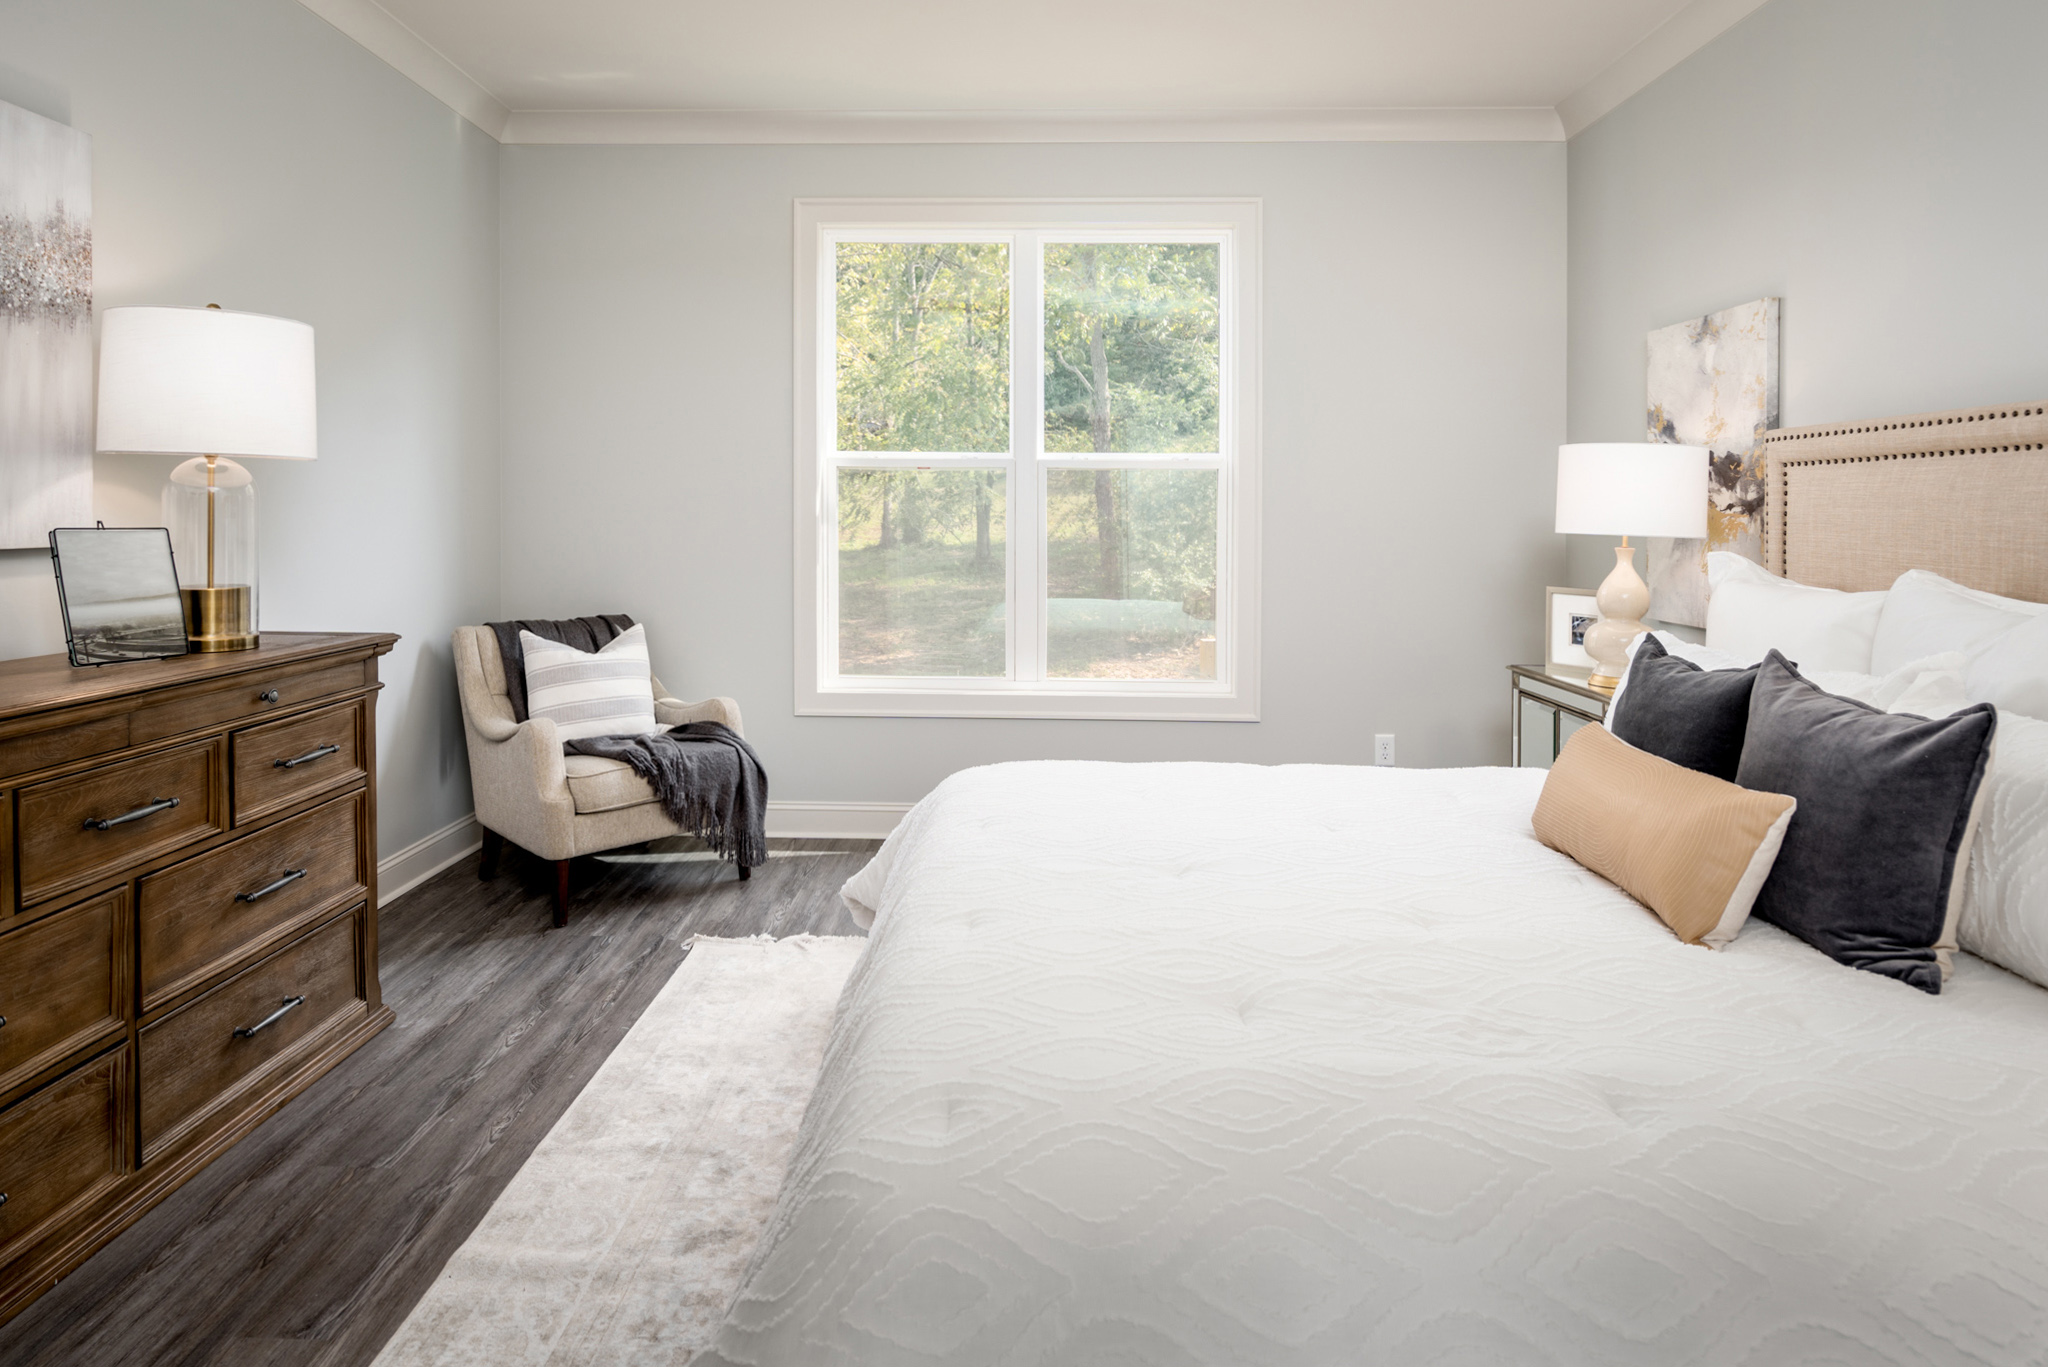 Master Bedroom with staged interior design